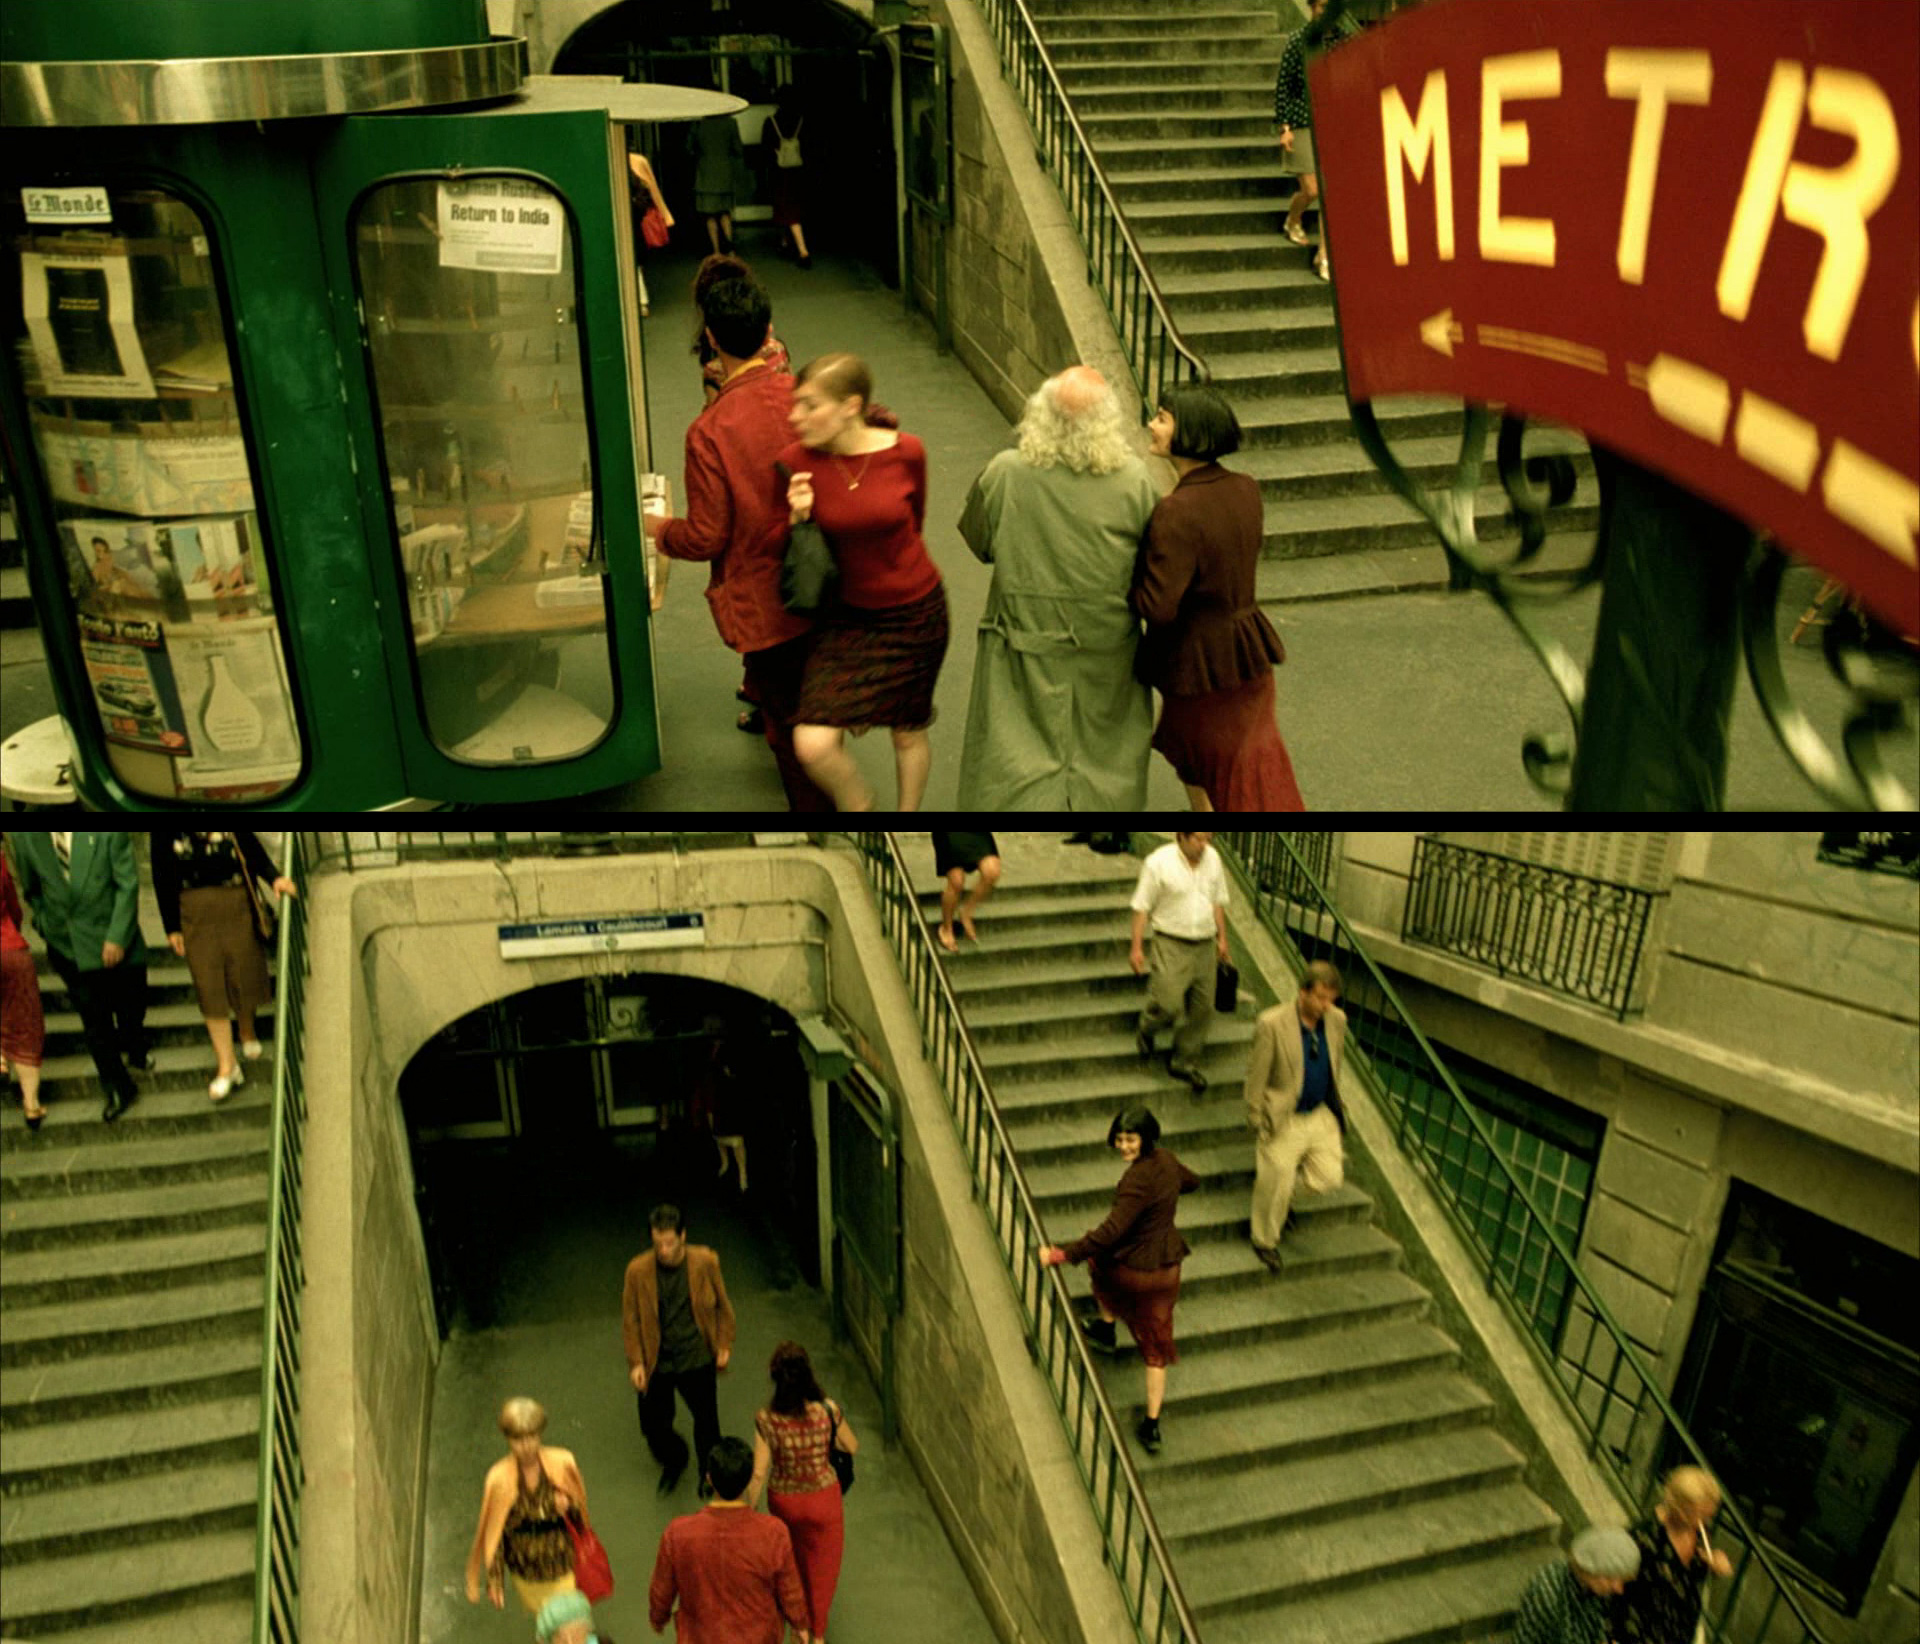 Amelie Poulain film locations Montmartre Paris France travel screenshots Lamarck Caulaincourt metro station